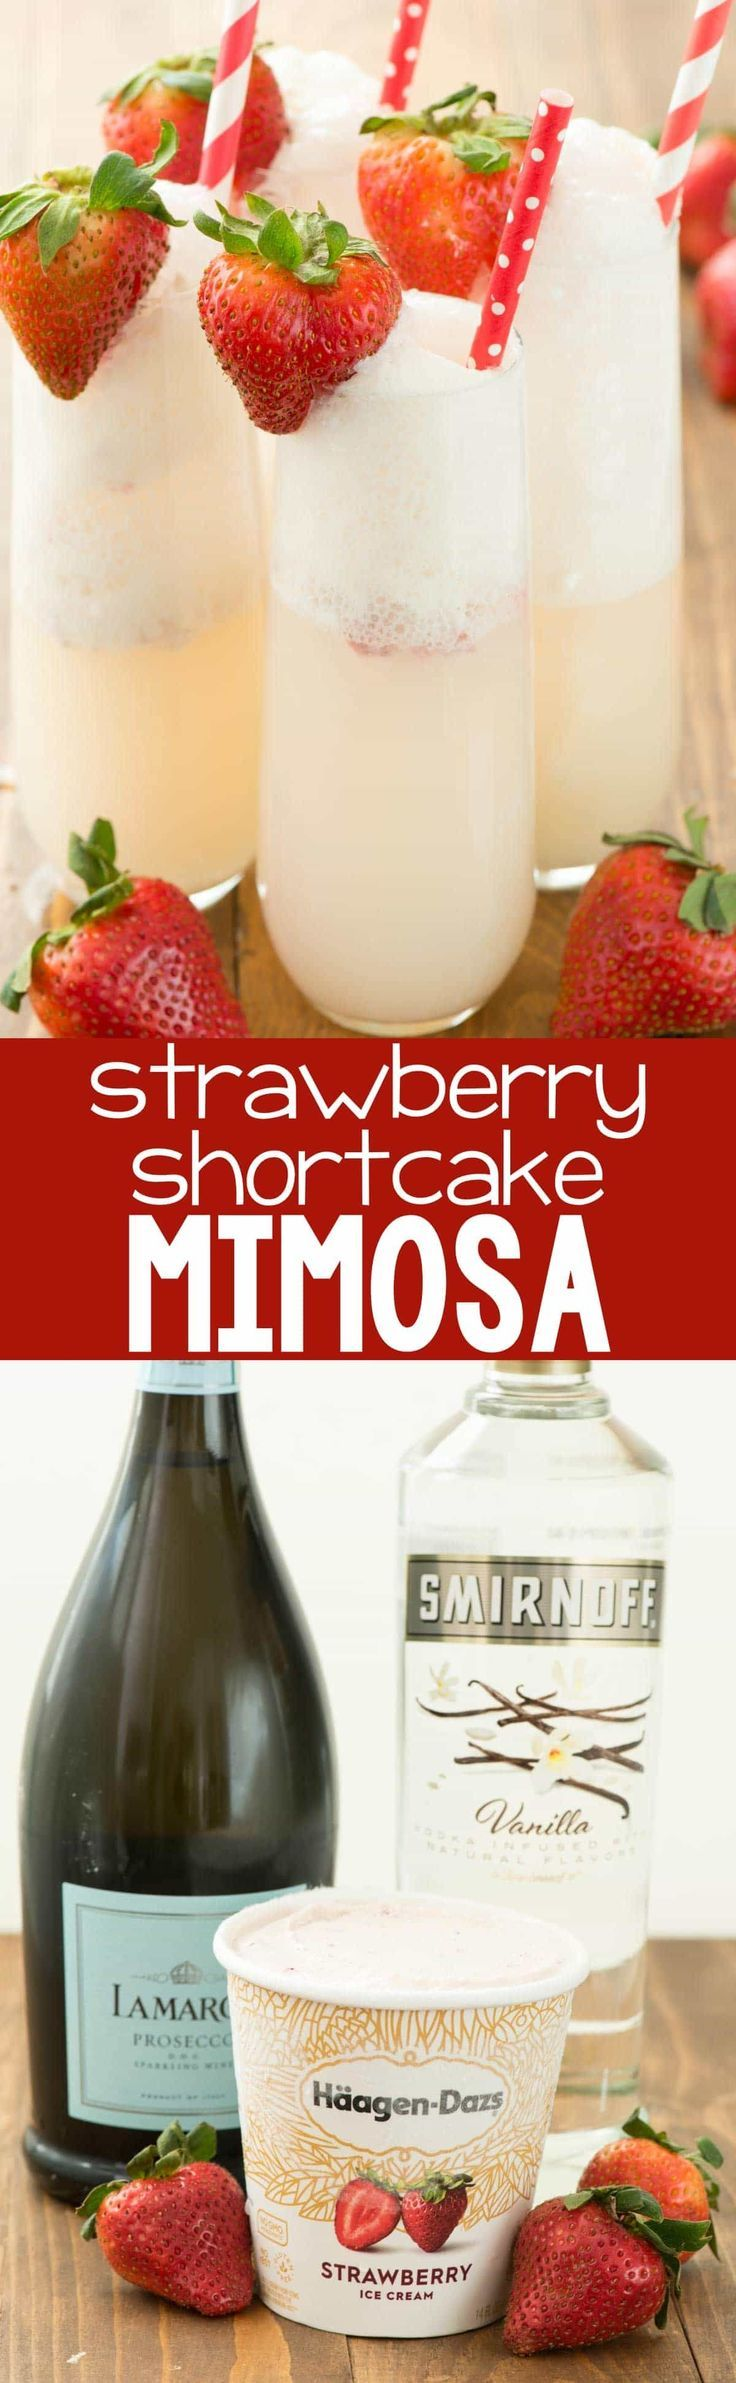 Strawberry Shortcake Mimosa - just three ingredients to the prettiest mimosa recipe ever! This champagne cocktail is perfect for brunch and can be made as a single cocktail or as a punch! #cocktaildrinks #wineglasswriter